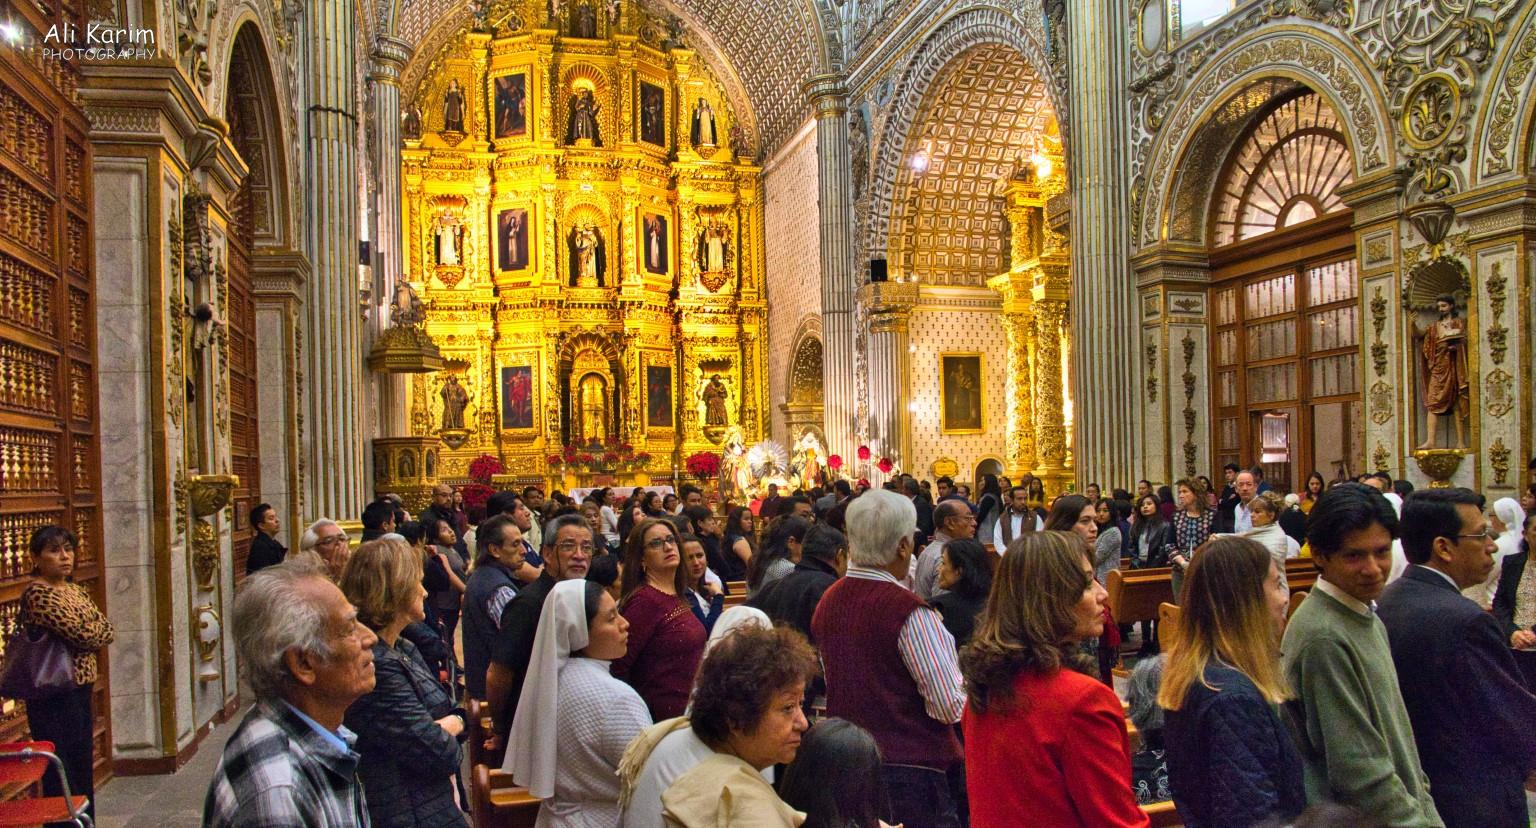 Oaxaca, Mexico We attended the 9PM Mass in the Oaxaca Cathedral on New Year's eve; it was busy. After Mass, everyone hugged and blessed each other, including us :)